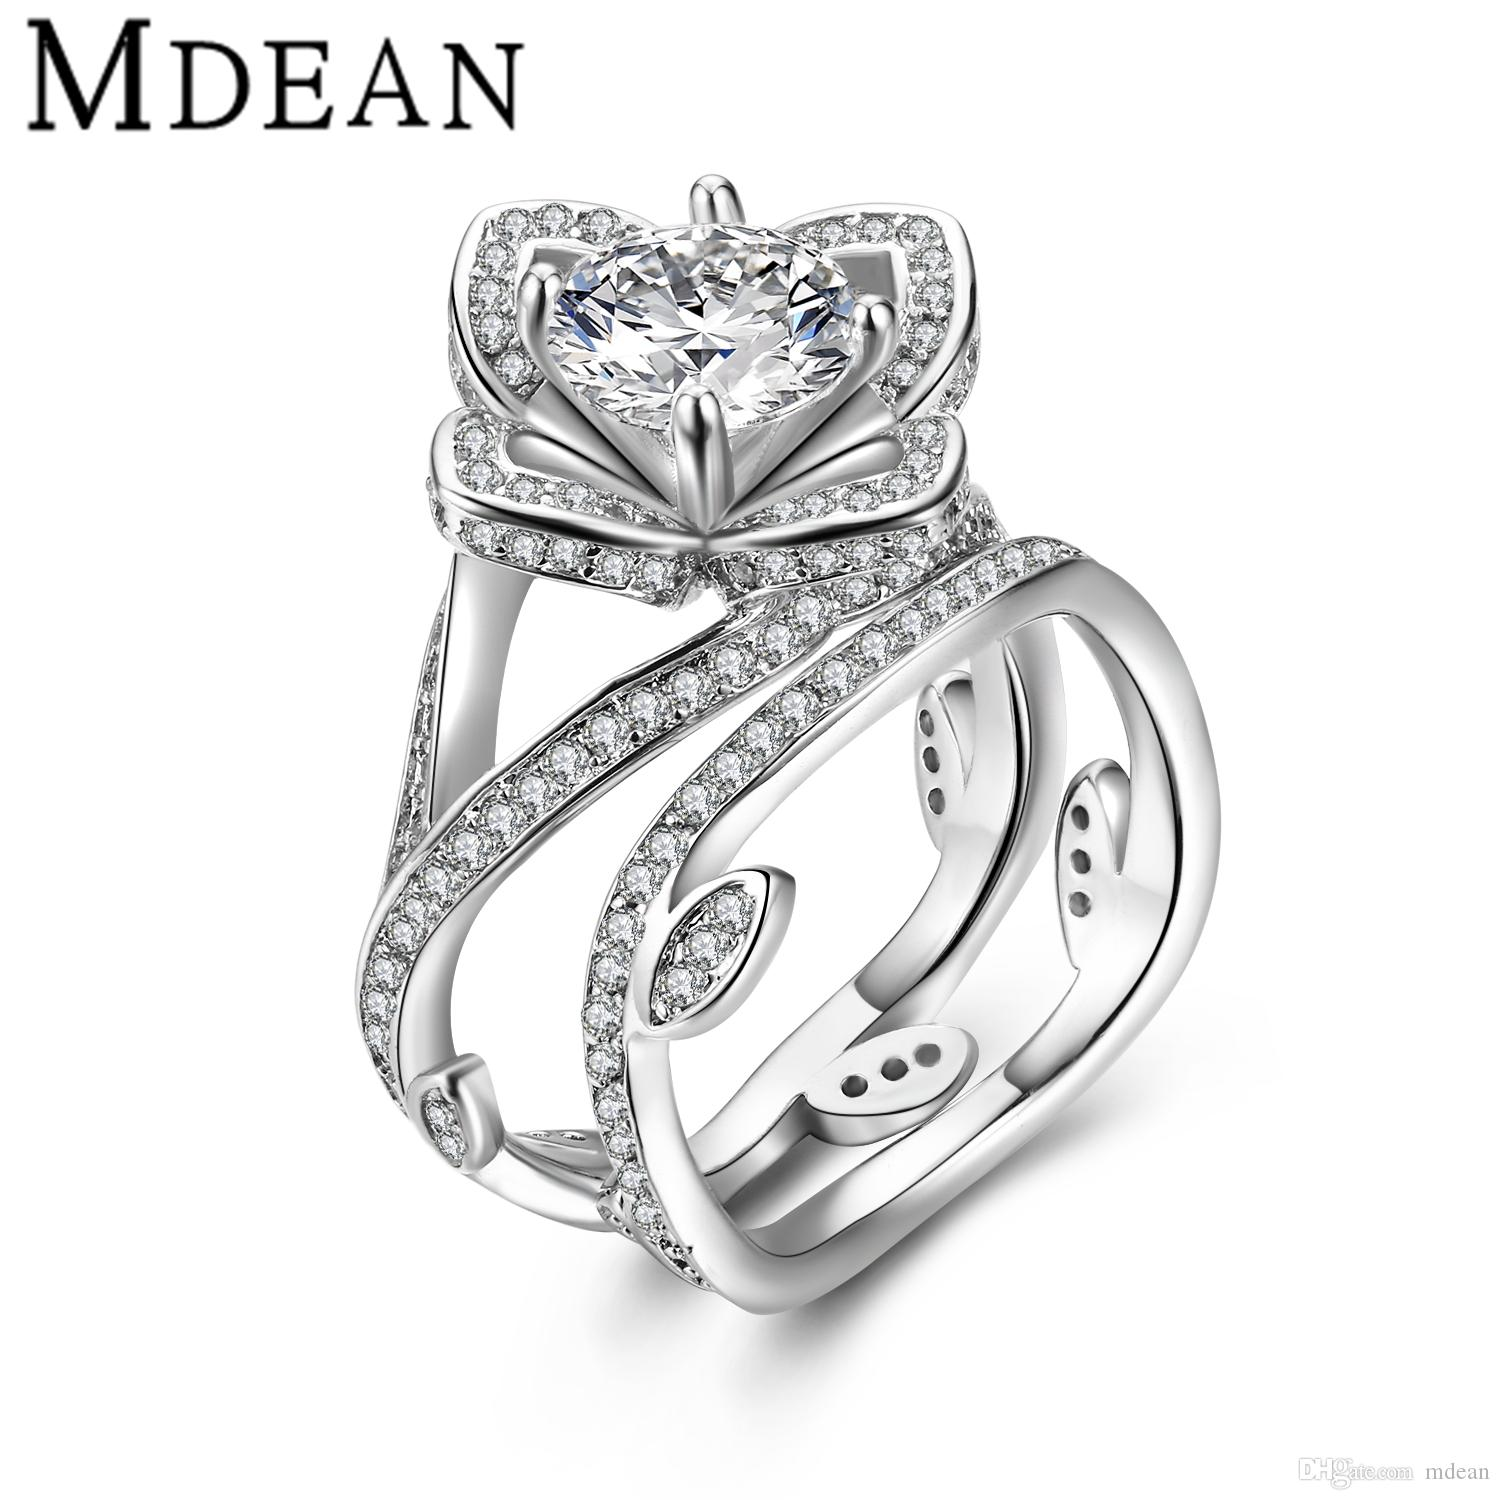 2017 mdean white gold plated ring sets for women engagement cz